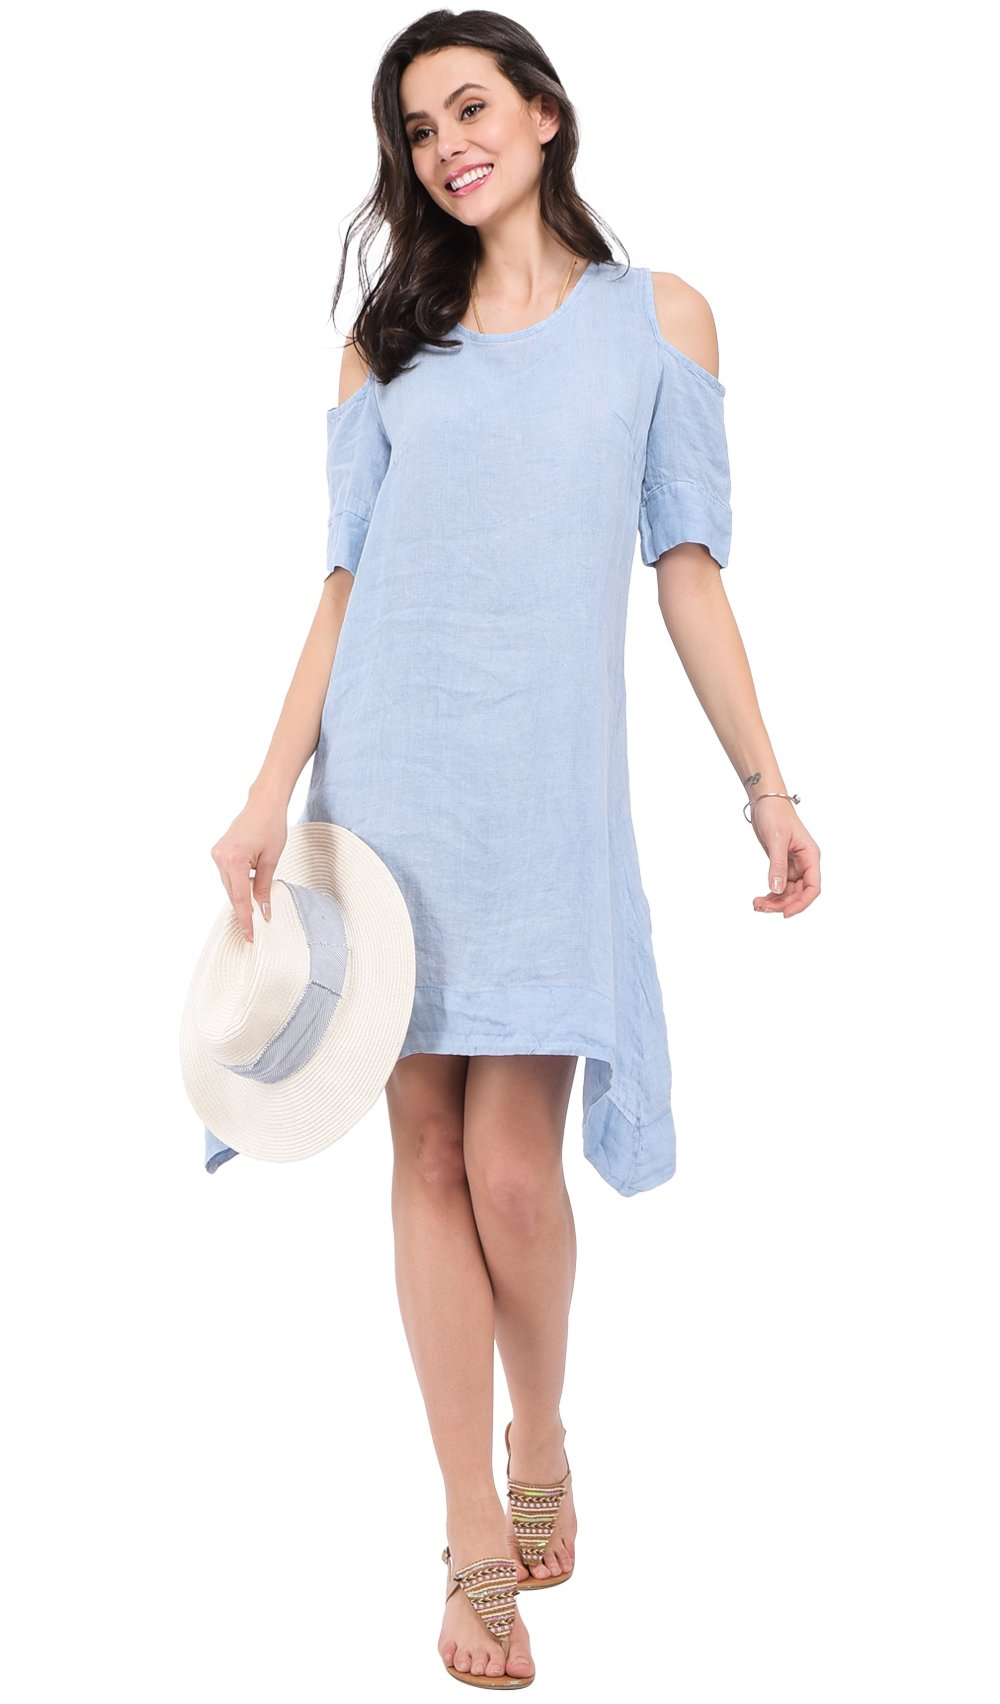 MID-LENGHT FADED DRESS WITH ROUND COLLAR AND OPENED SHOULDERS